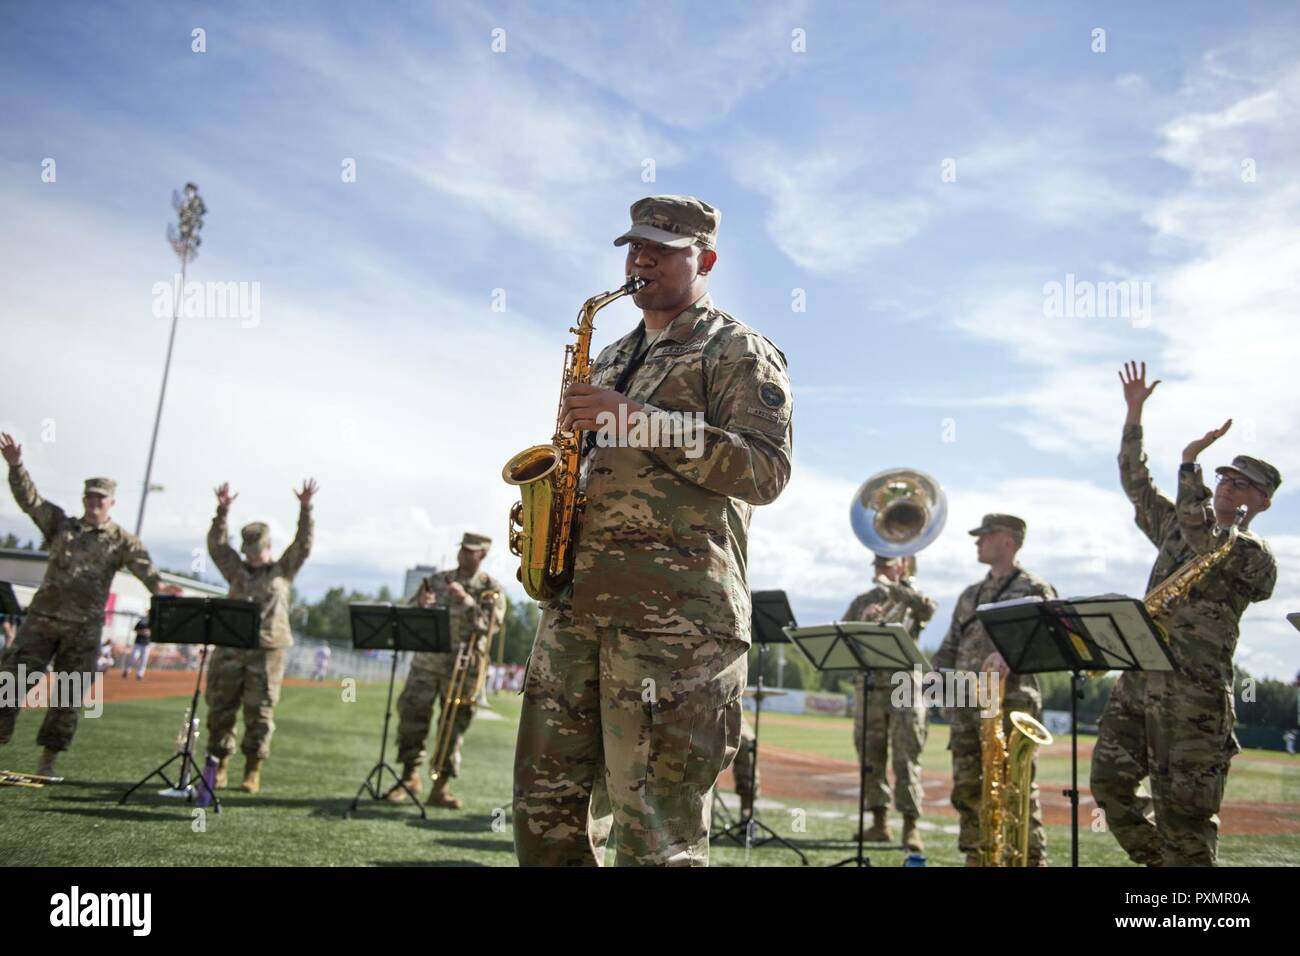 U.S. Army Alaska's 9th Army Band serenades Anchorage area baseball fans at Mulcahy Stadium in Anchorage, Alaska, June 16, 2017. The Anchorage Bucs faced off against the Peninsula Oilers for a doubleheader as part of a military appreciation event. - Stock Image